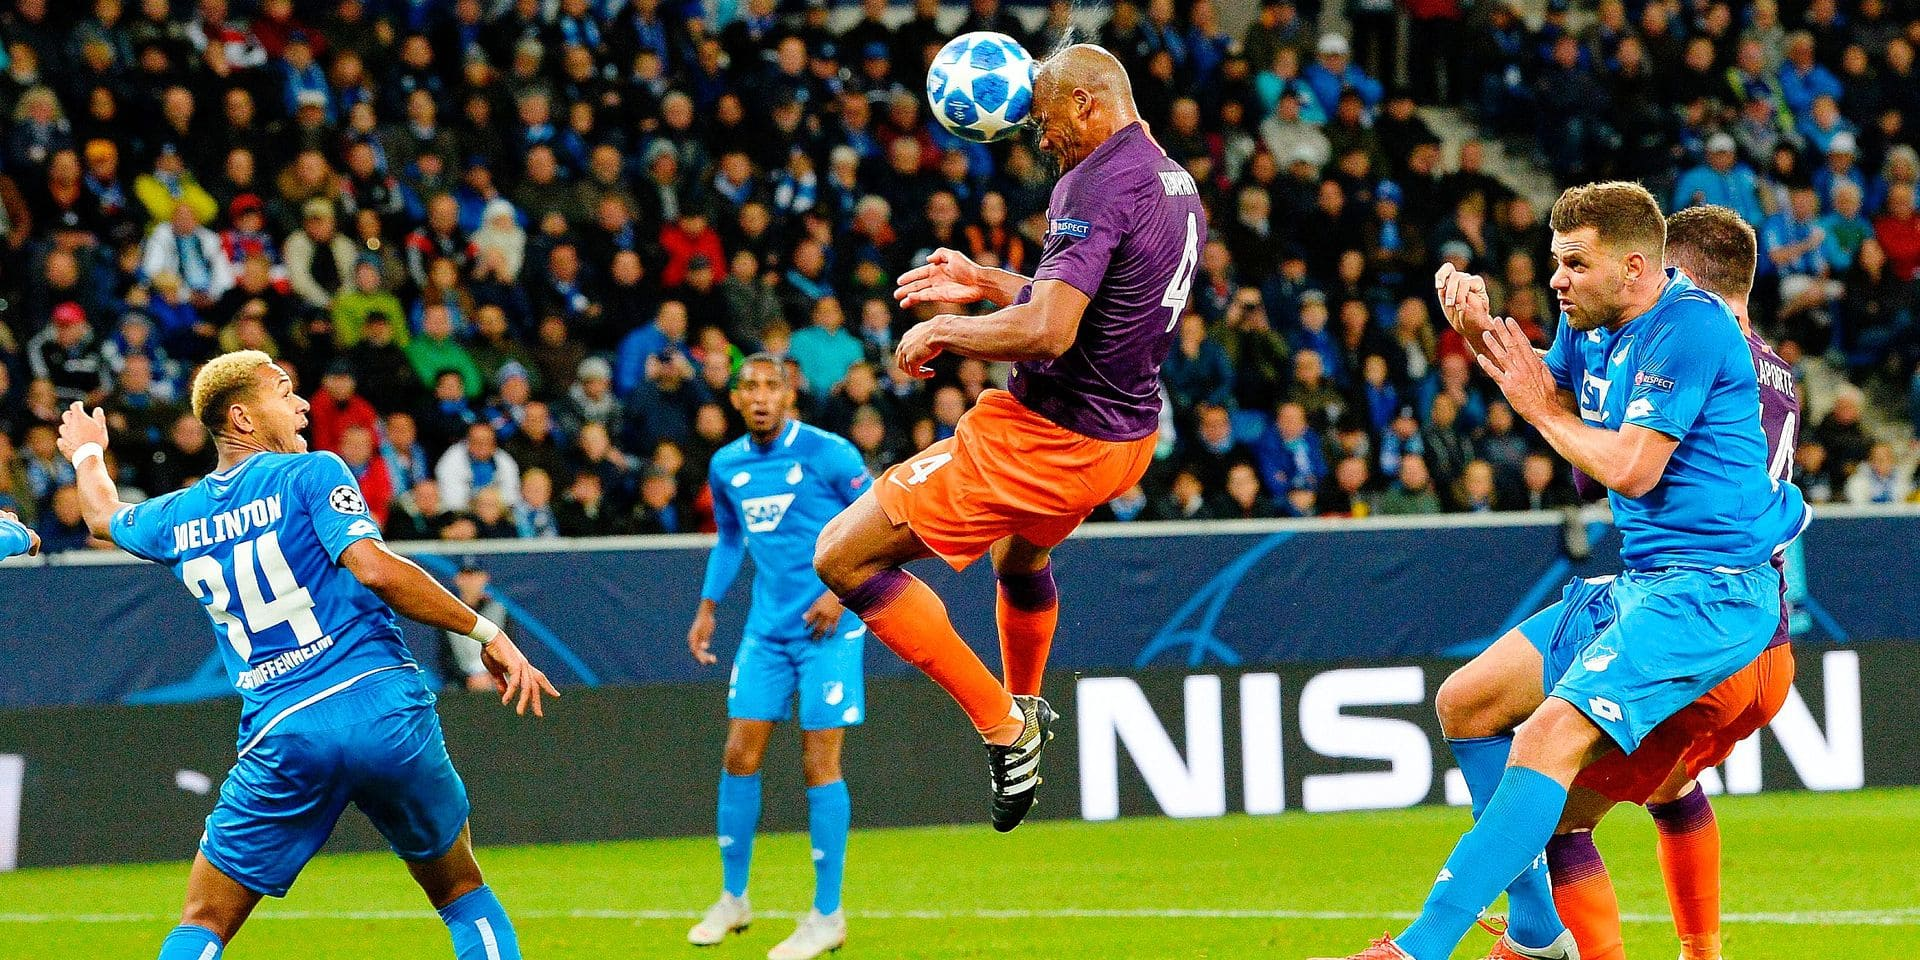 Manchester City's Belgian defender Vincent Kompany (C) heads the ball during the UEFA Champions League group F football match between TSG 1899 Hoffenheim and Manchester City at the Rhein-Neckar-Arena in Sinsheim, southwestern Germany, on October 2, 2018. (Photo by Thomas KIENZLE / AFP)